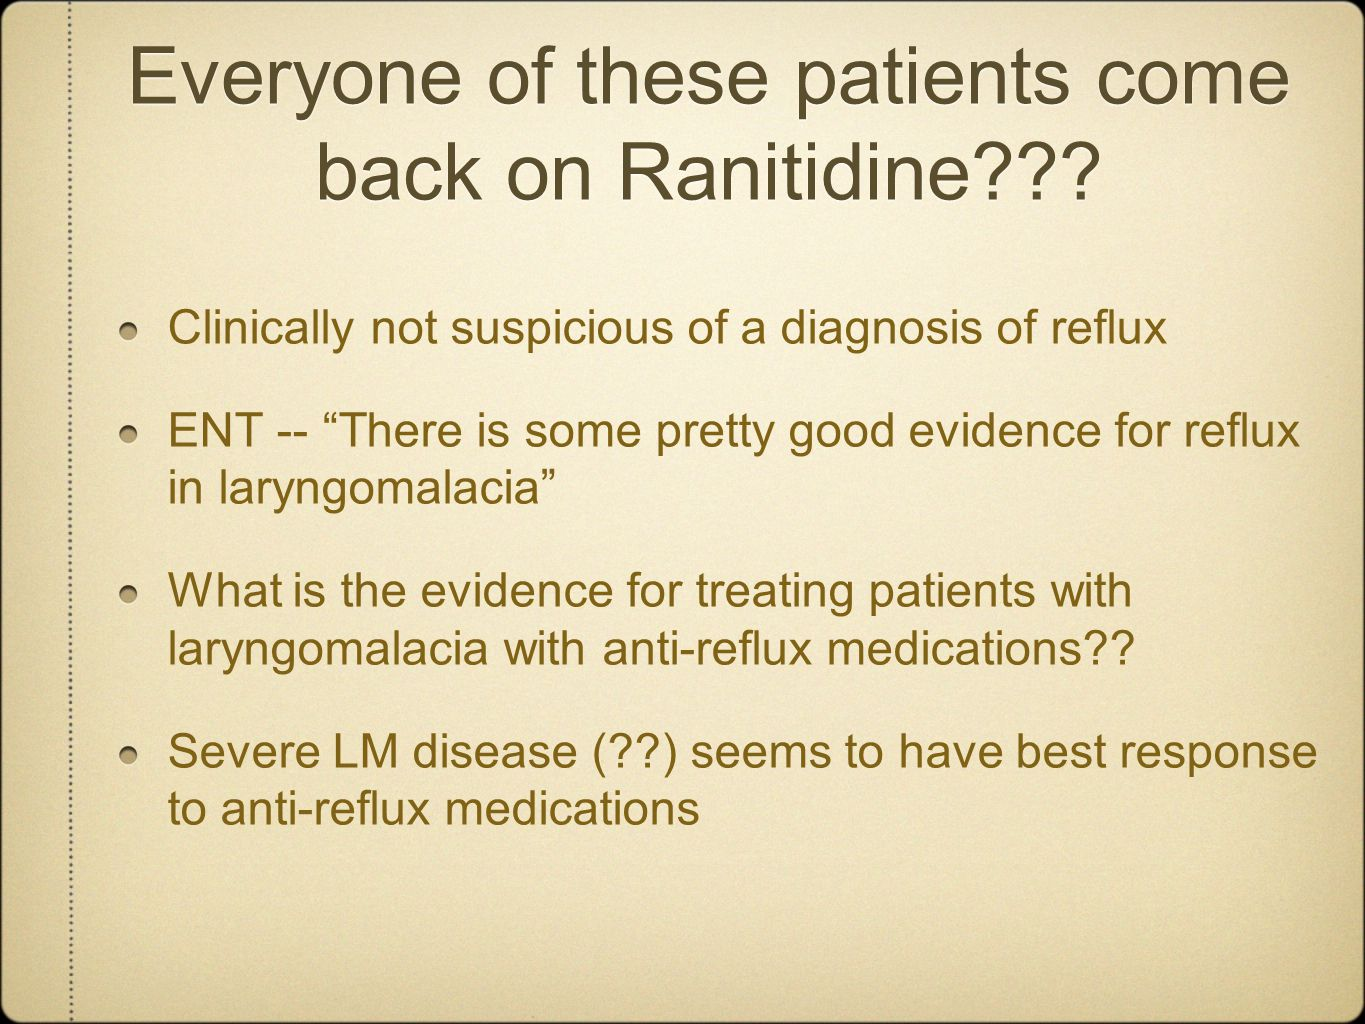 Everyone of these patients come back on Ranitidine